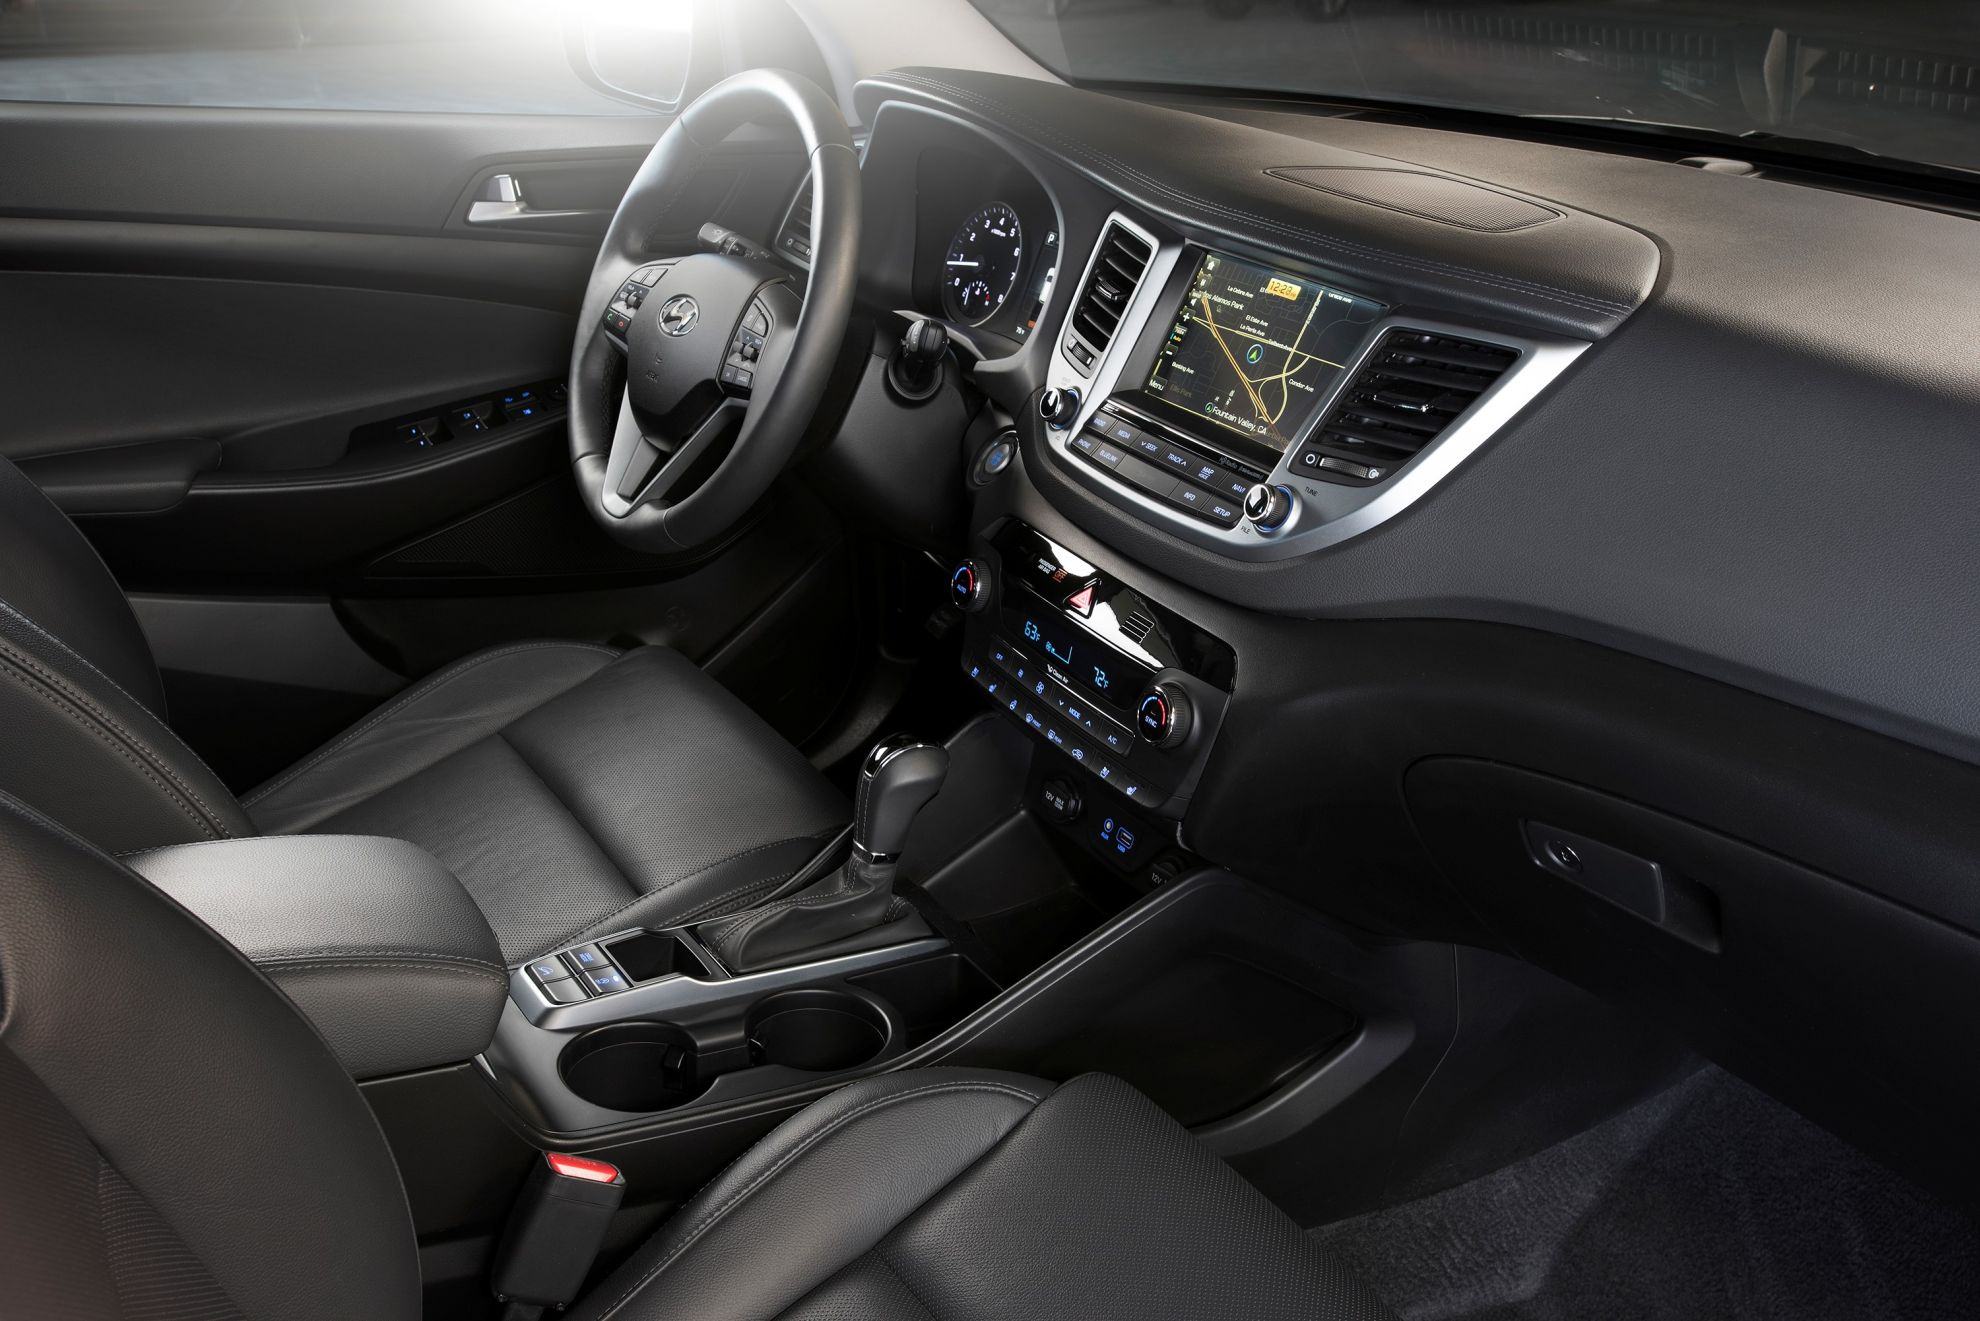 Hyundai-shows-new-Tucson-iX35-at-New-York-International-Auto-Show-interior